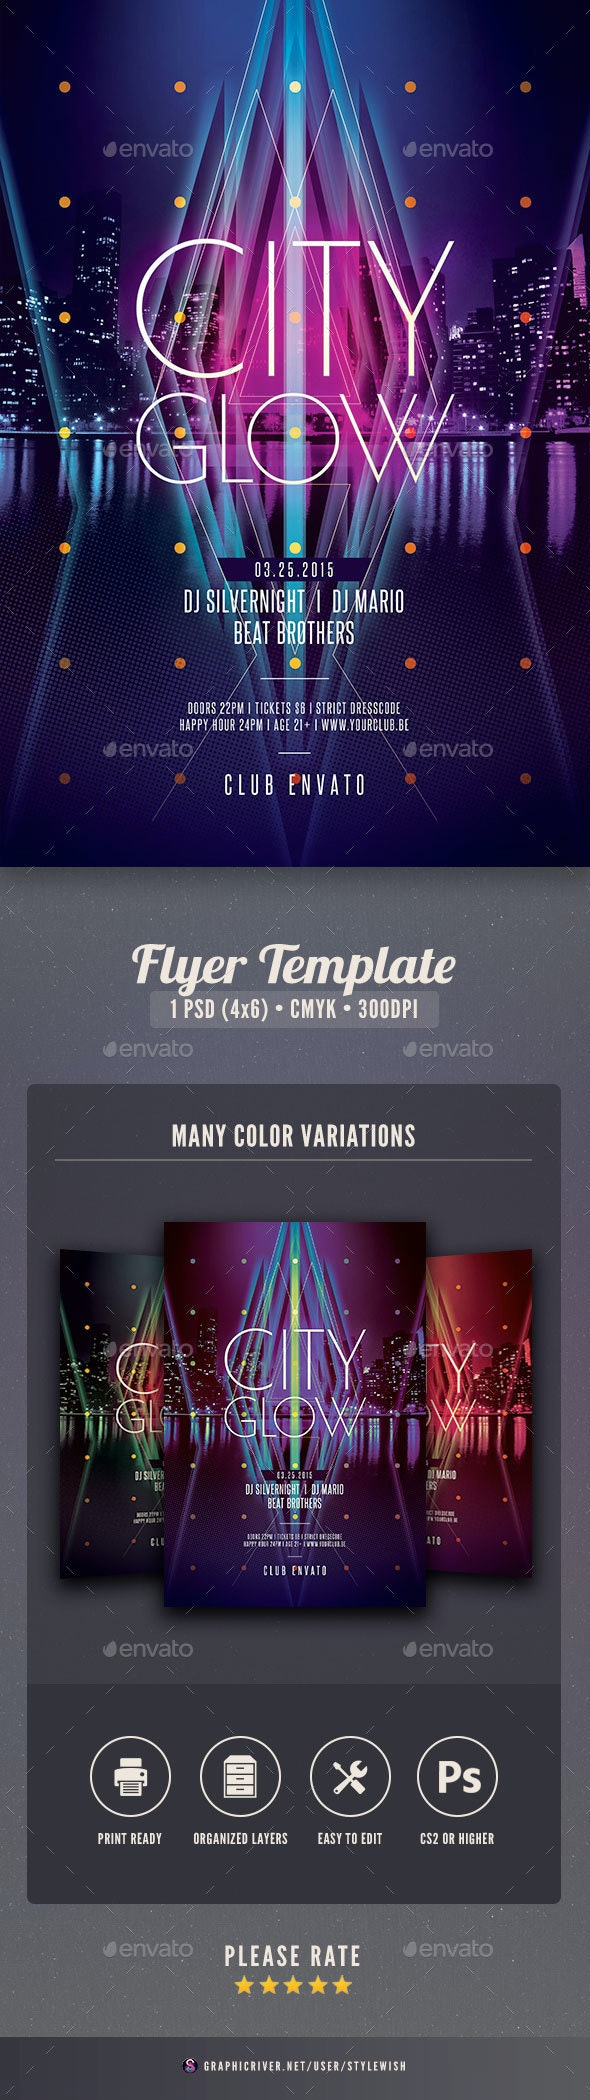 City Glow Flyer - Clubs & Parties Events